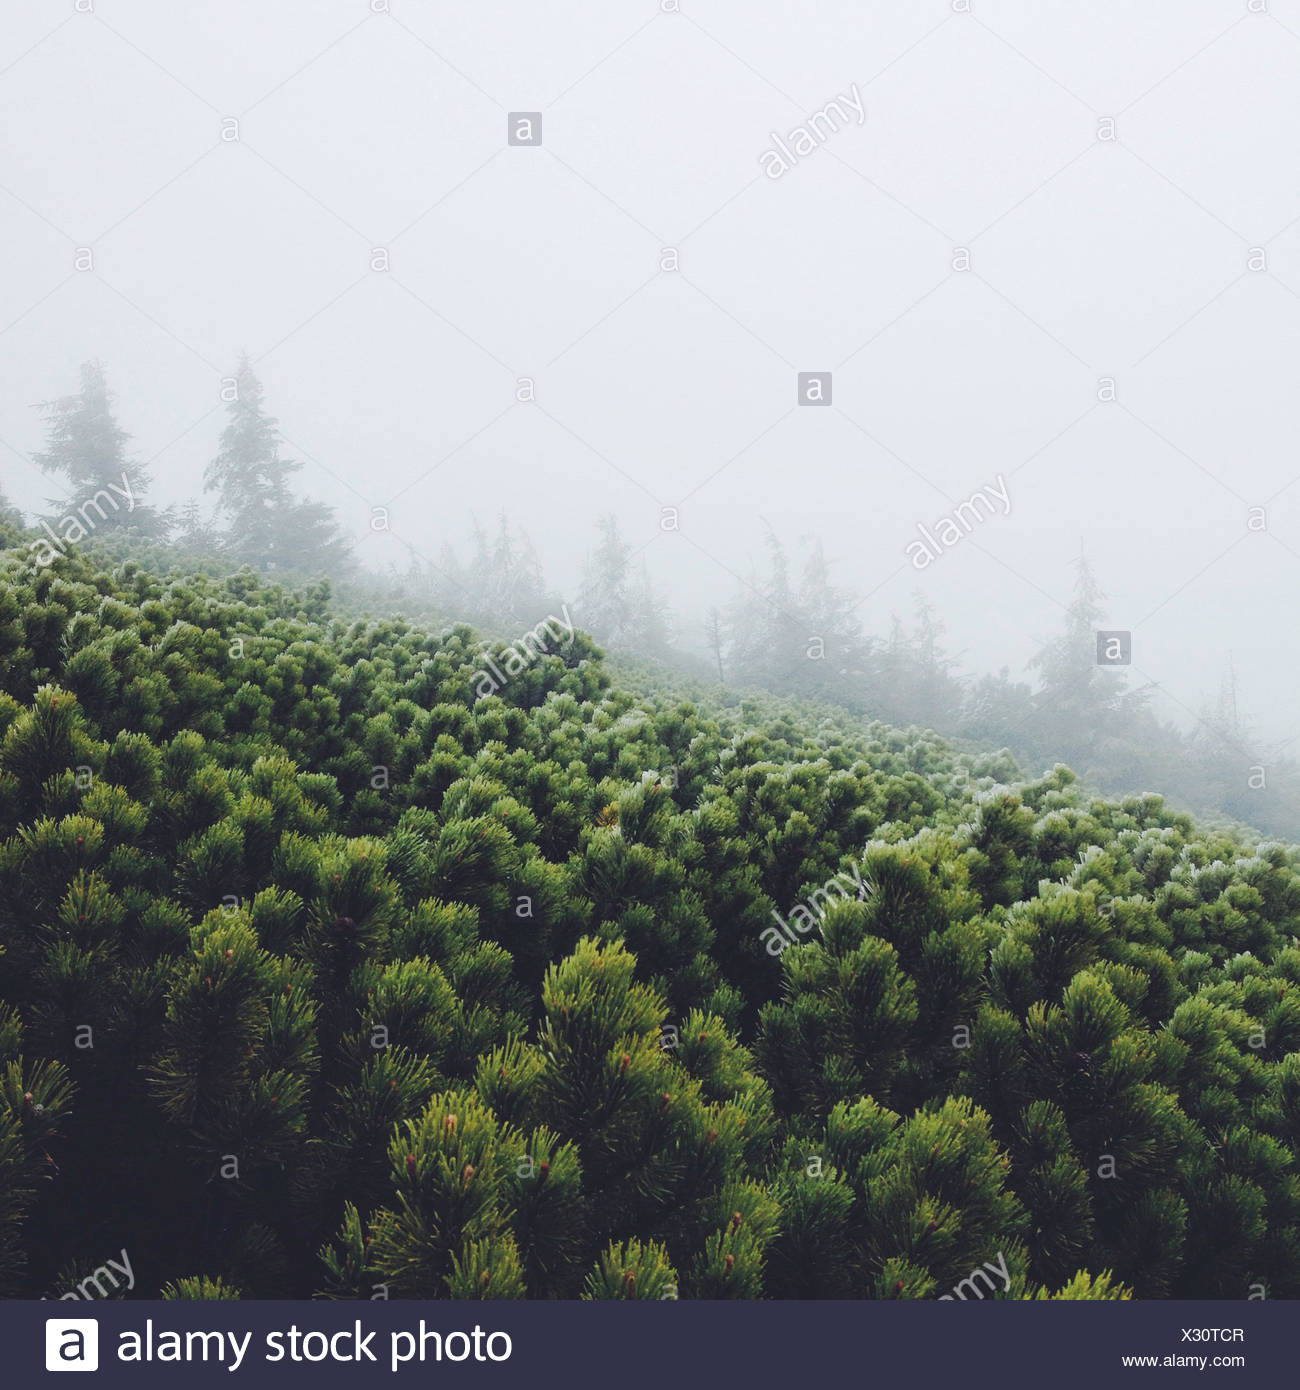 Pine tree in fog - Stock Image